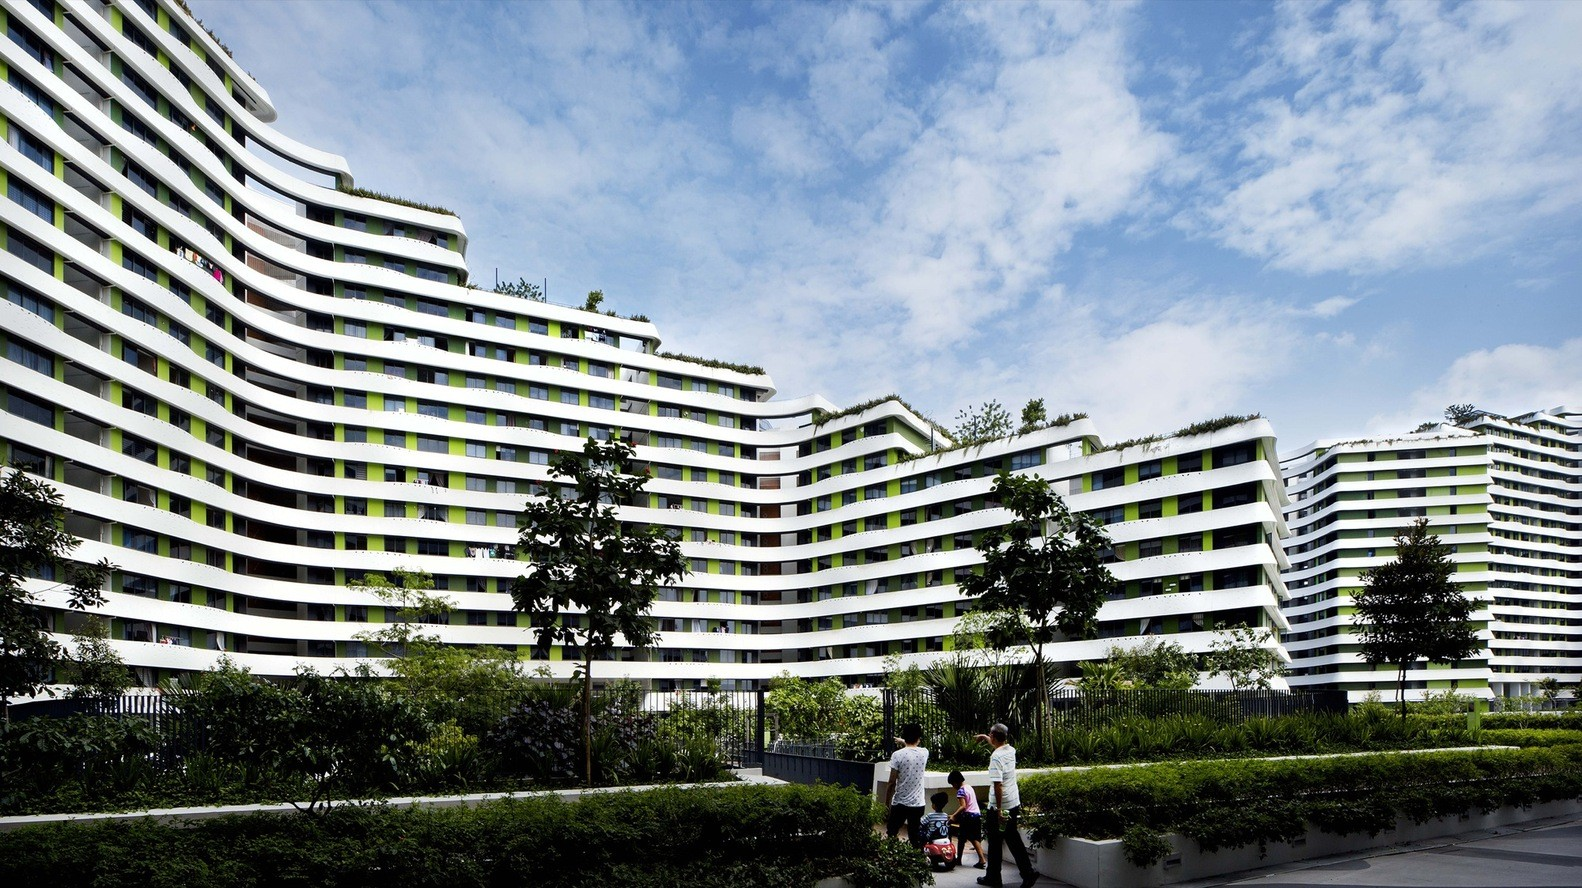 group8asia_punggol_waterway_terraces_01_Patrick__Bingham-Hall.jpg